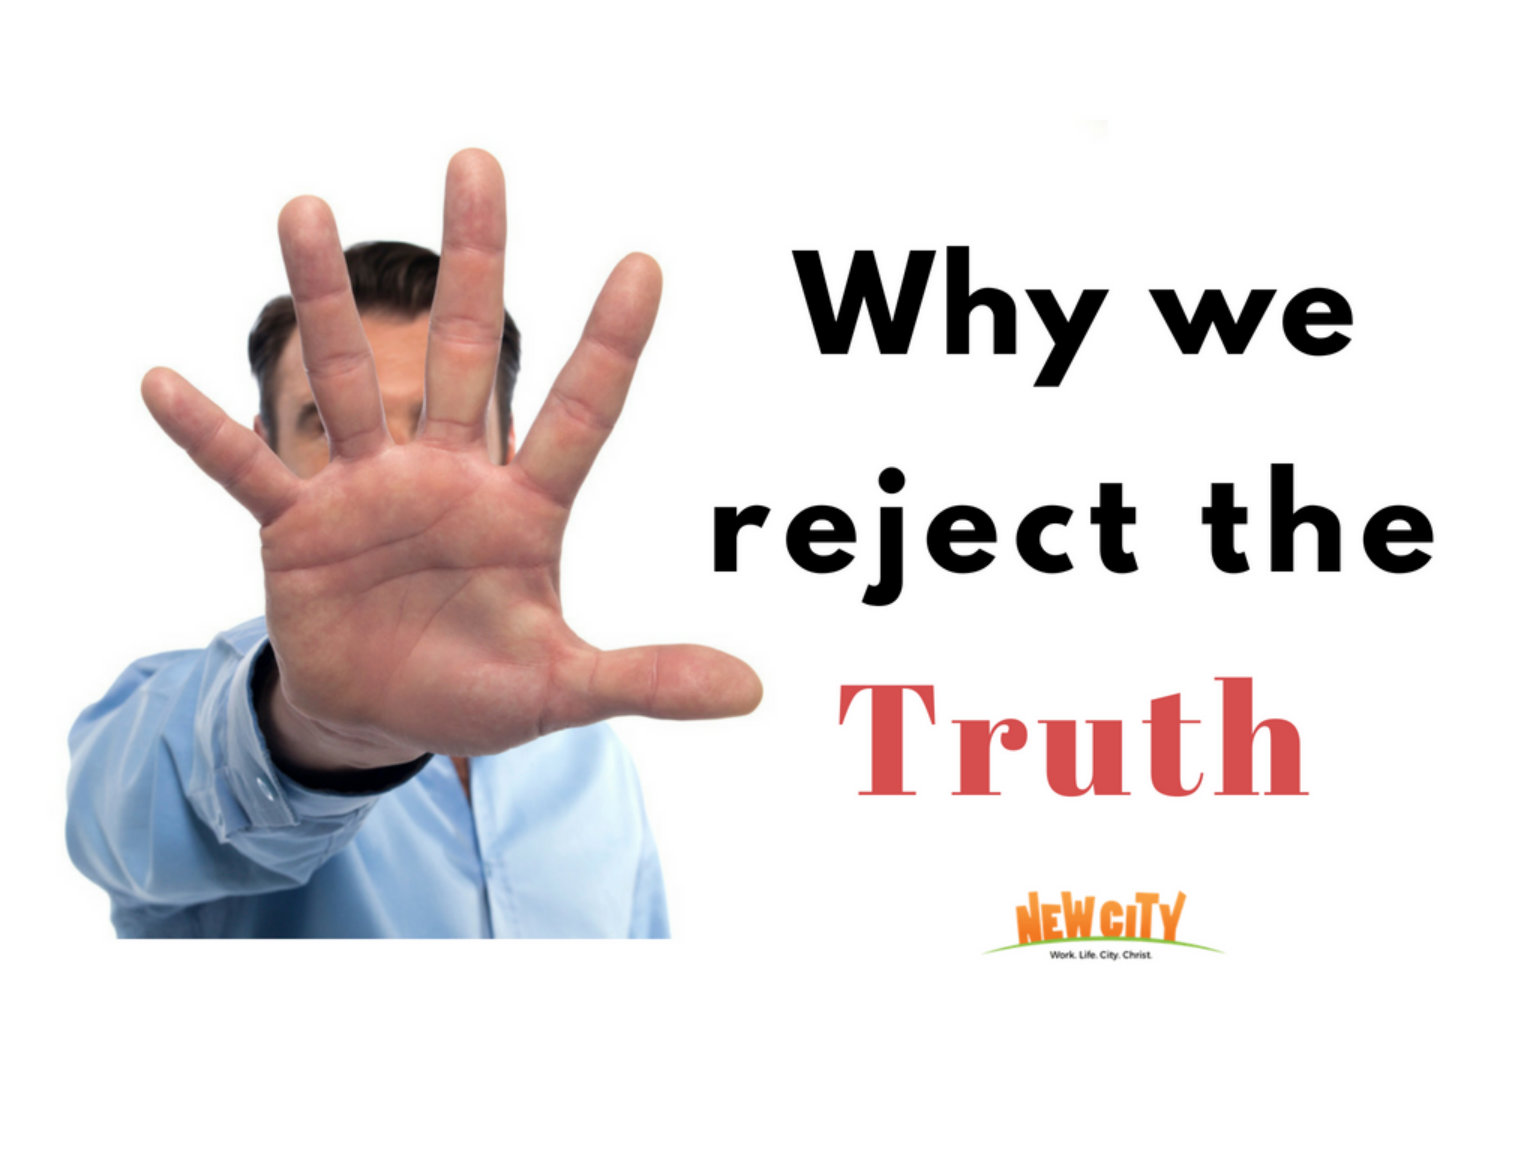 Why We Reject the Truth Image